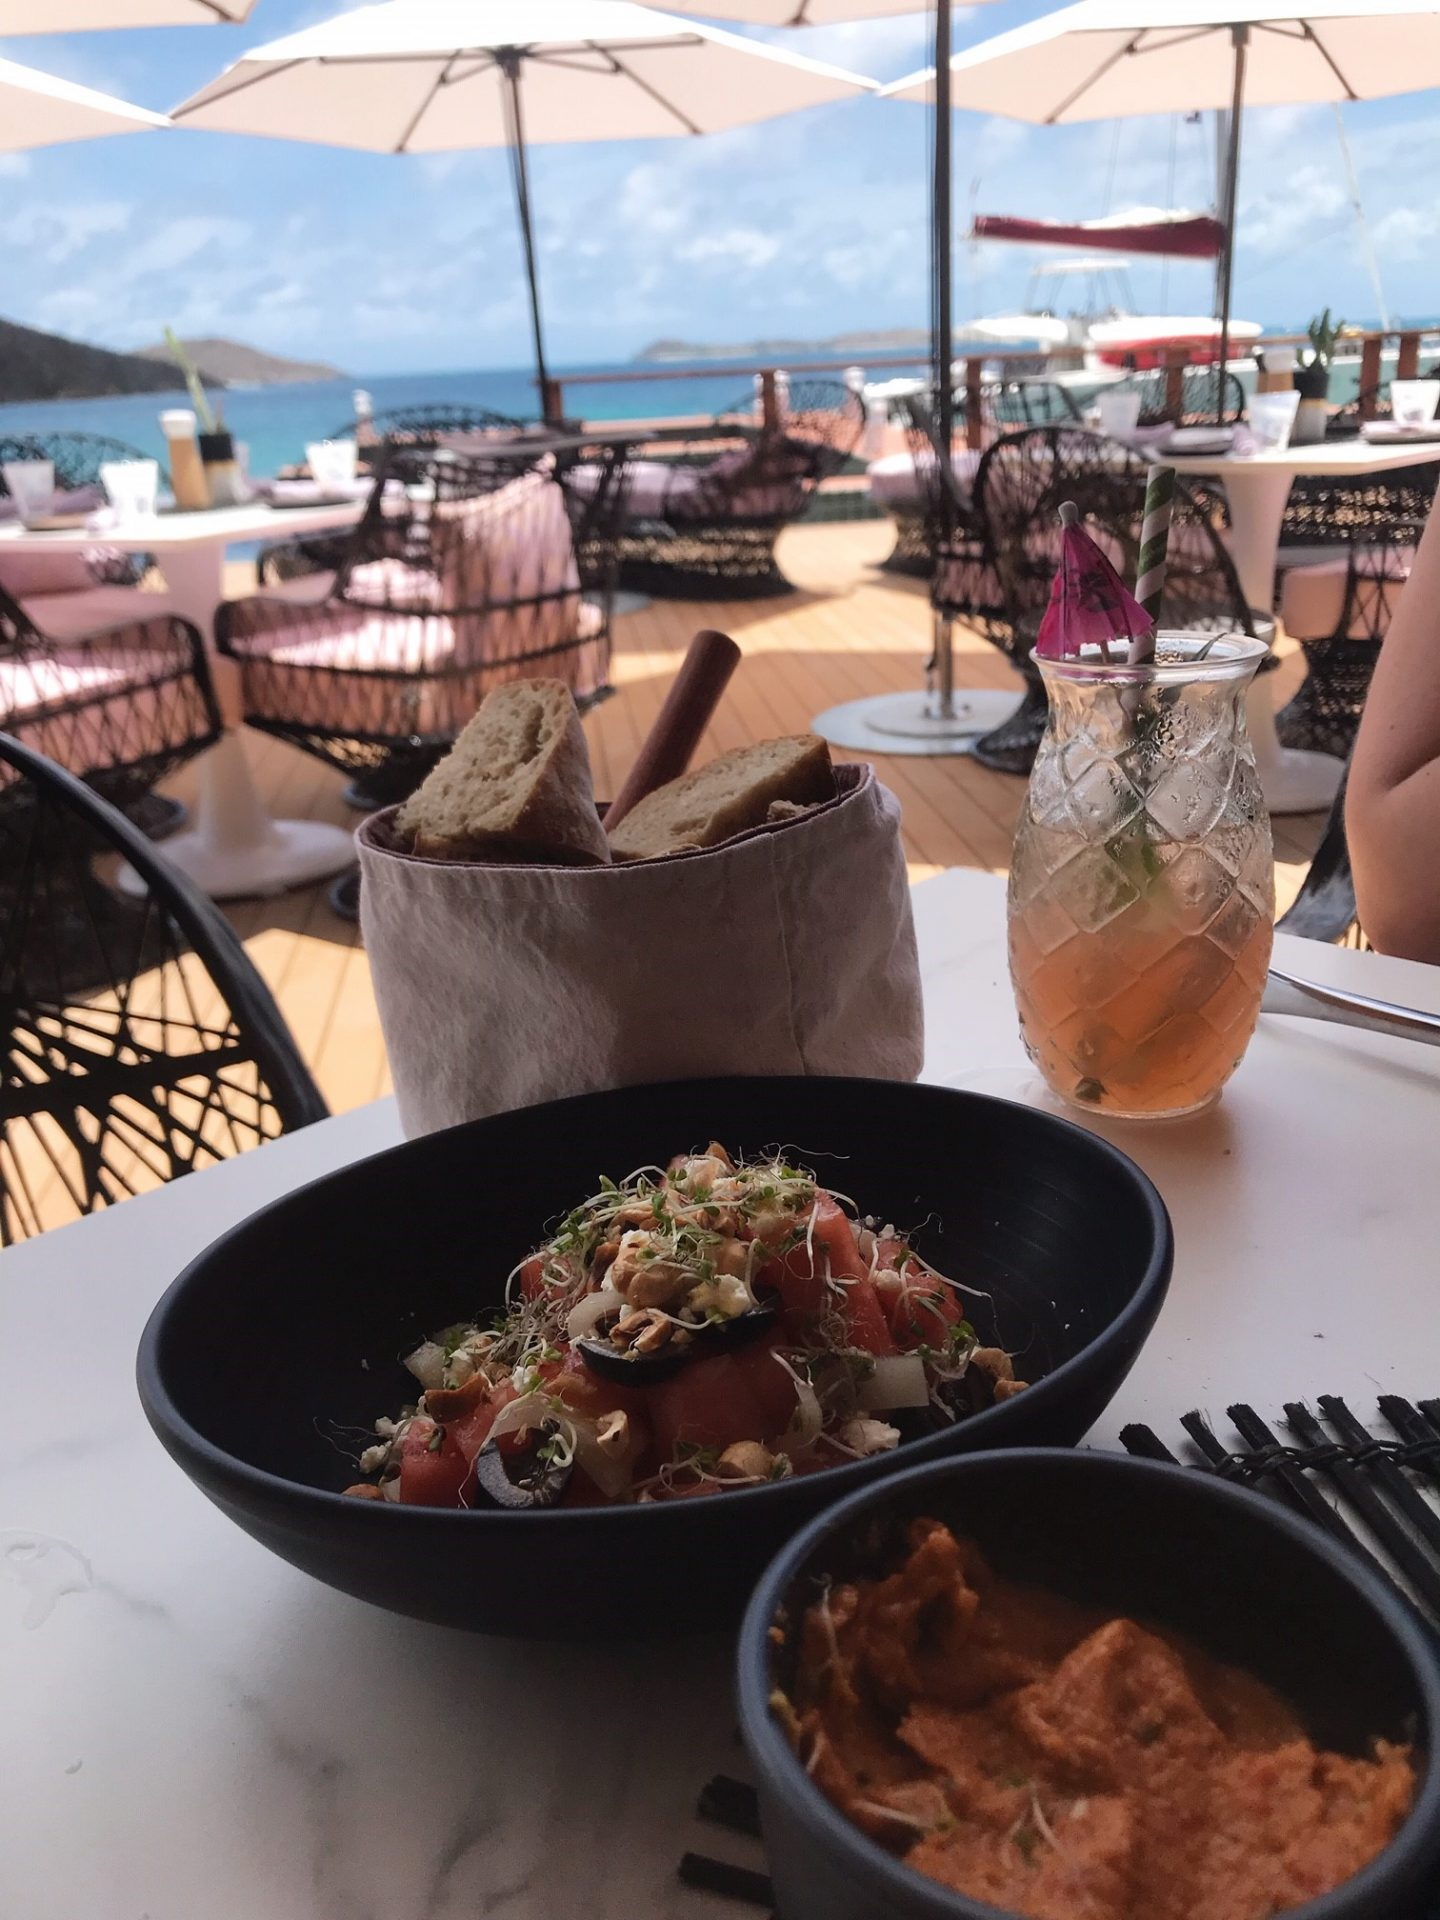 Nova Restaurant at Oil Nut Bay, Virgin Gorda - British Virgin Islands